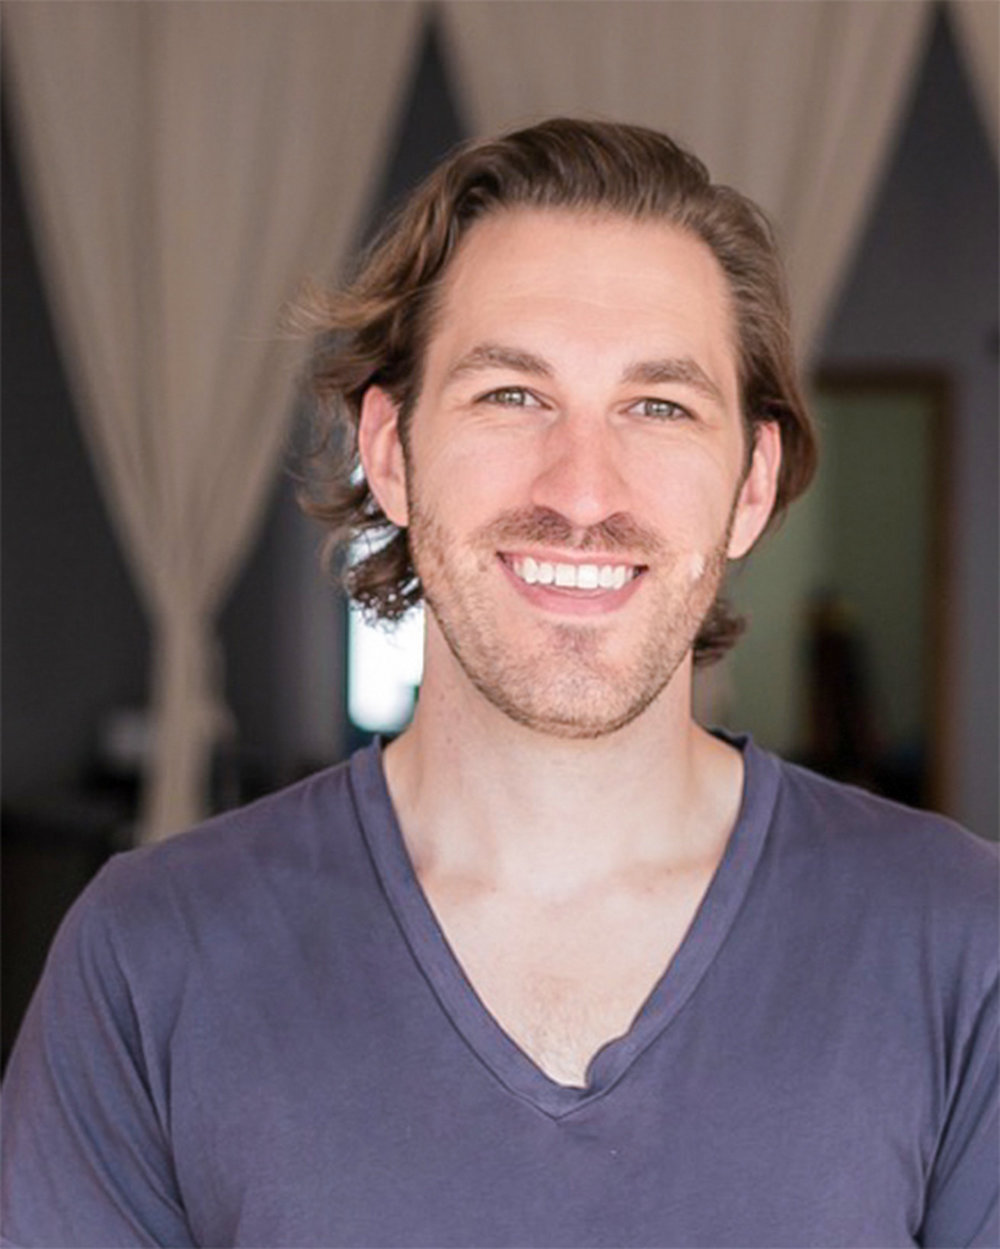 Zach's  practice  is  rooted  in  the  wisdom  of  yoga  as  therapy,  practical  ayurveda,    tantra  philosophy,  and  other  contemporary  systems  (Hannah  Somatics  &    Feldenkrais).  His  goal  through  both  group  and  private  work  is  to  facilitate  authentic    and  transformative  experiences  that  lead  to  empowerment,  self-understanding,    and  compassion.